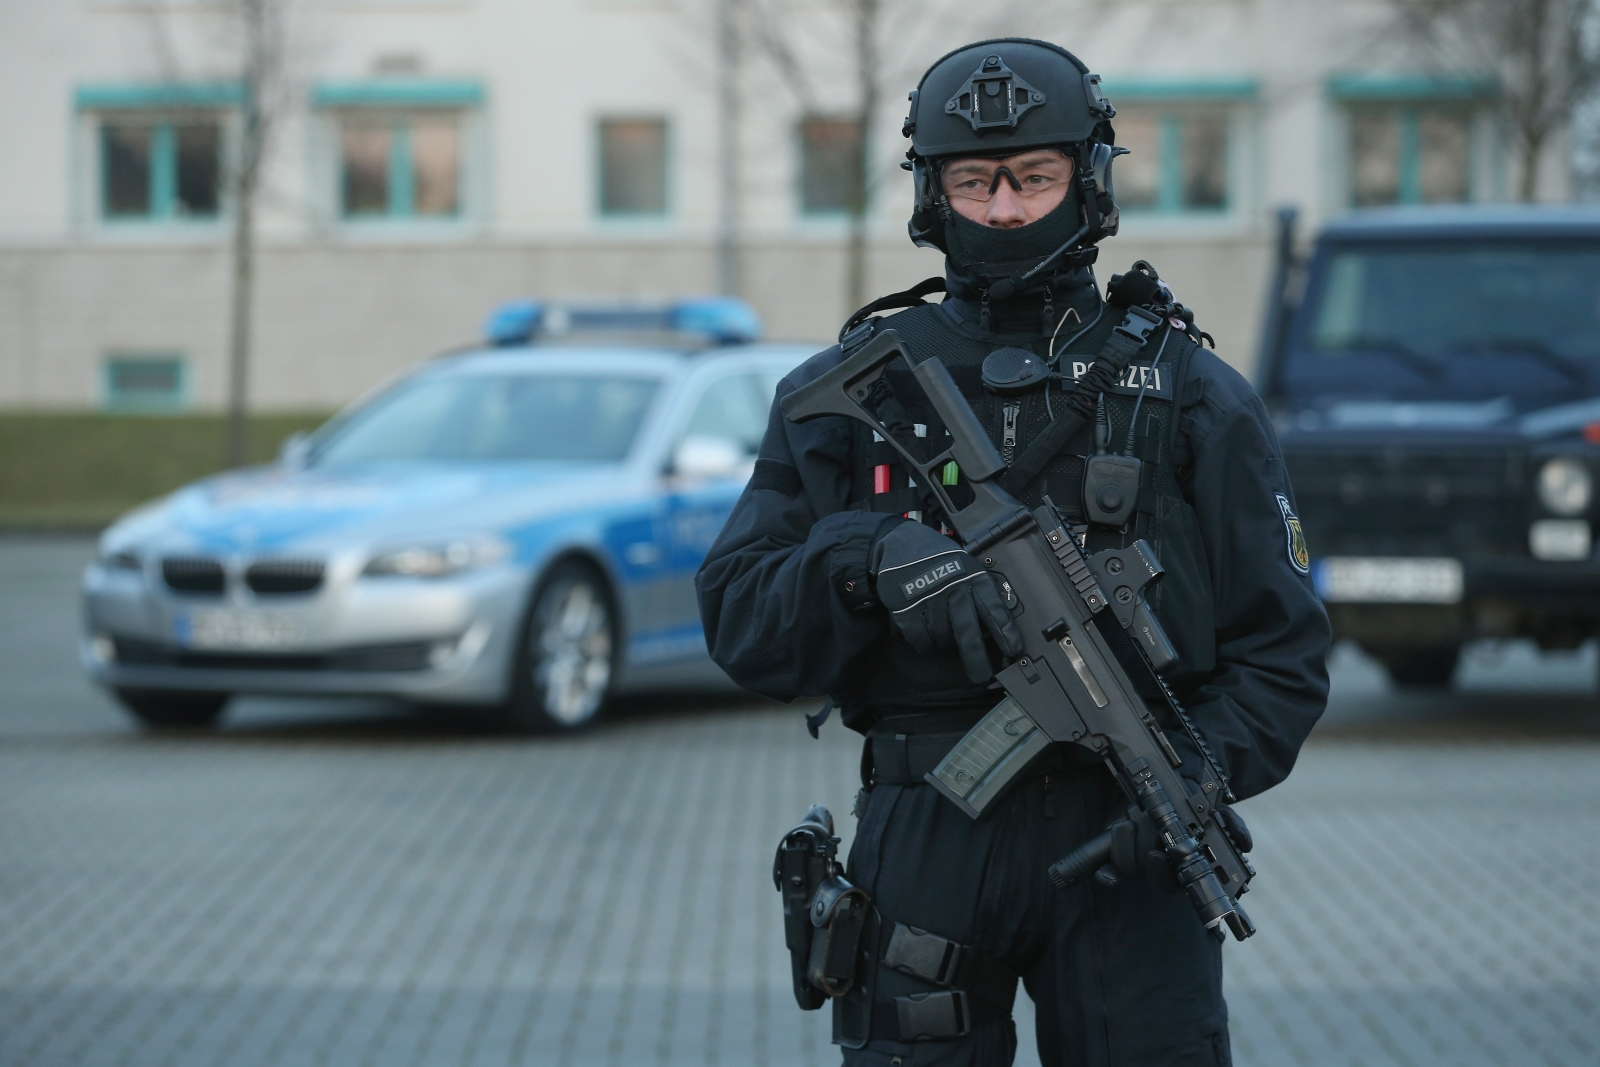 German police commandos